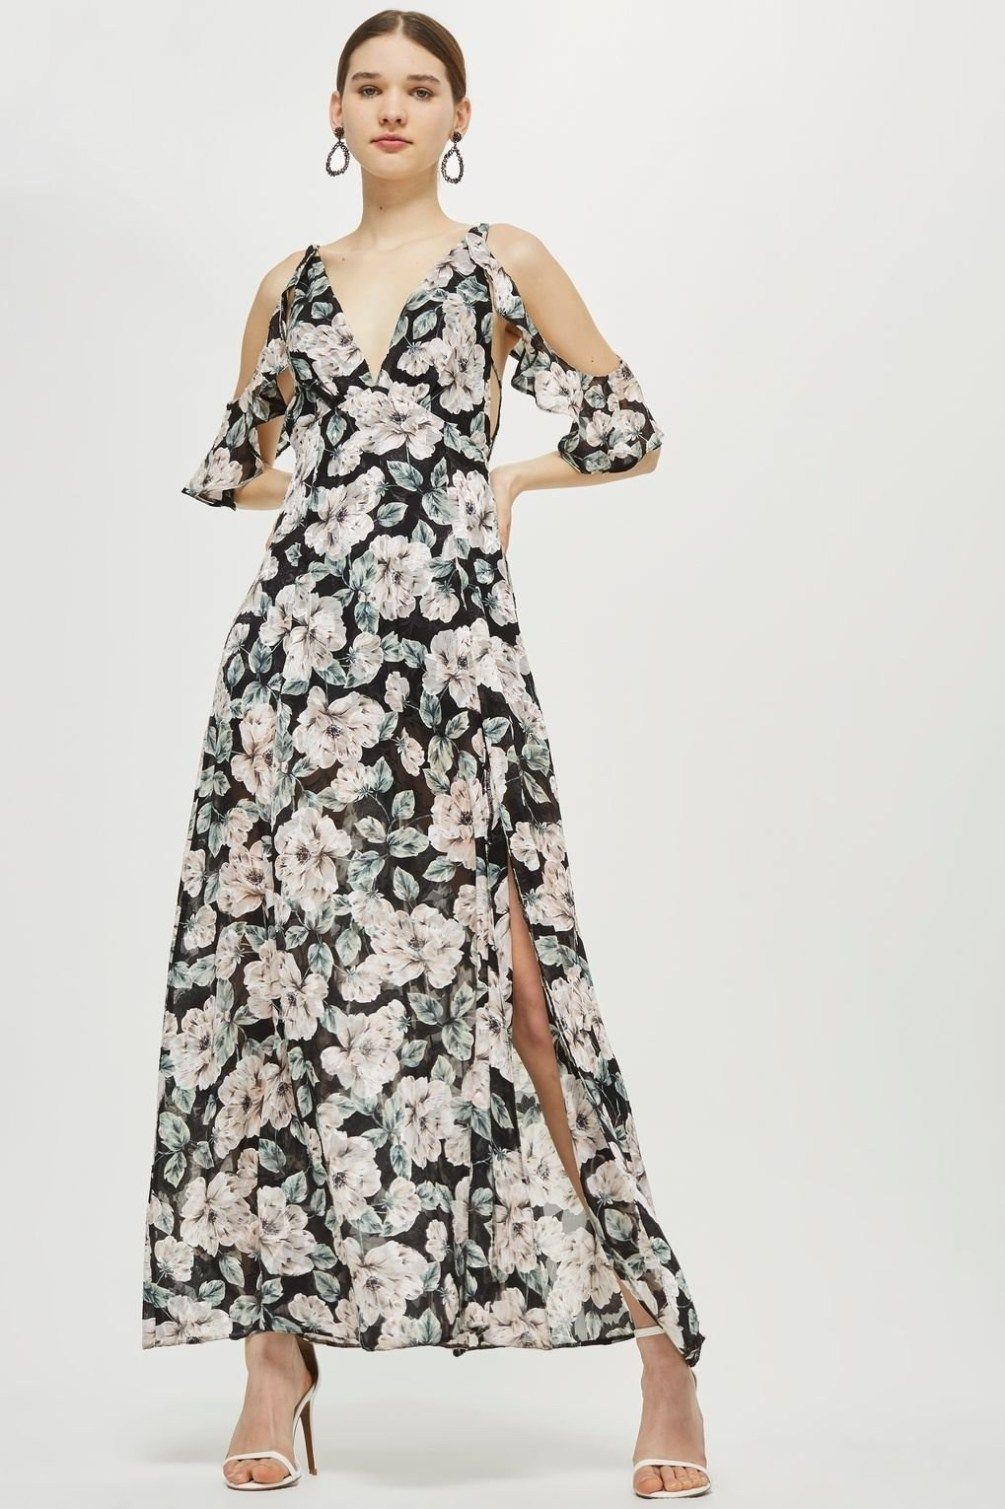 12 Long Floral Dresses To Wear This Summer Society19 Uk Wedding Guest Dress Trends Affordable Bridesmaid Dresses Wedding Guest Dress Summer [ 1509 x 1005 Pixel ]